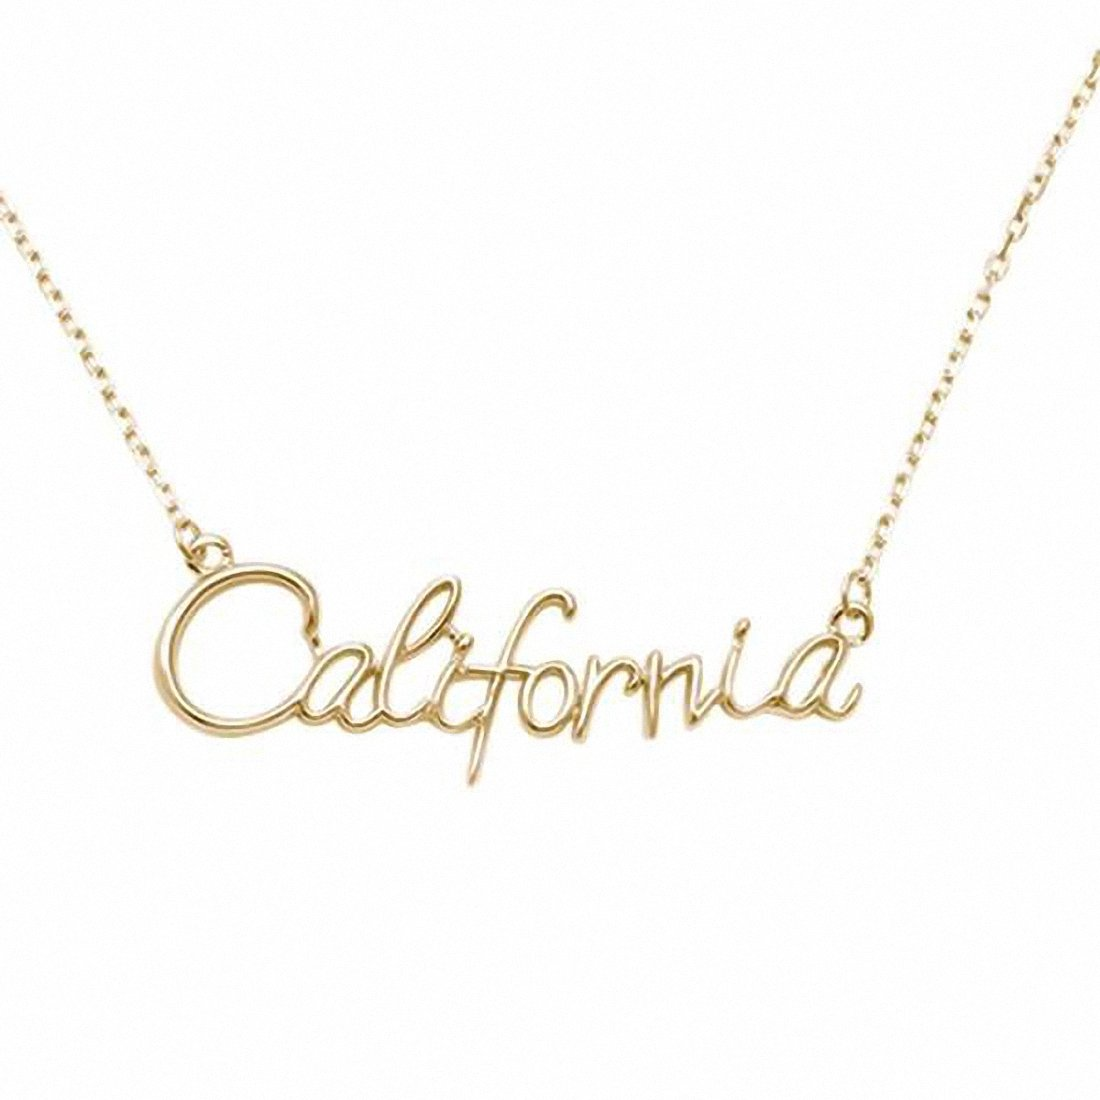 California Necklace Pendant 925 Sterling Silver Choose Color